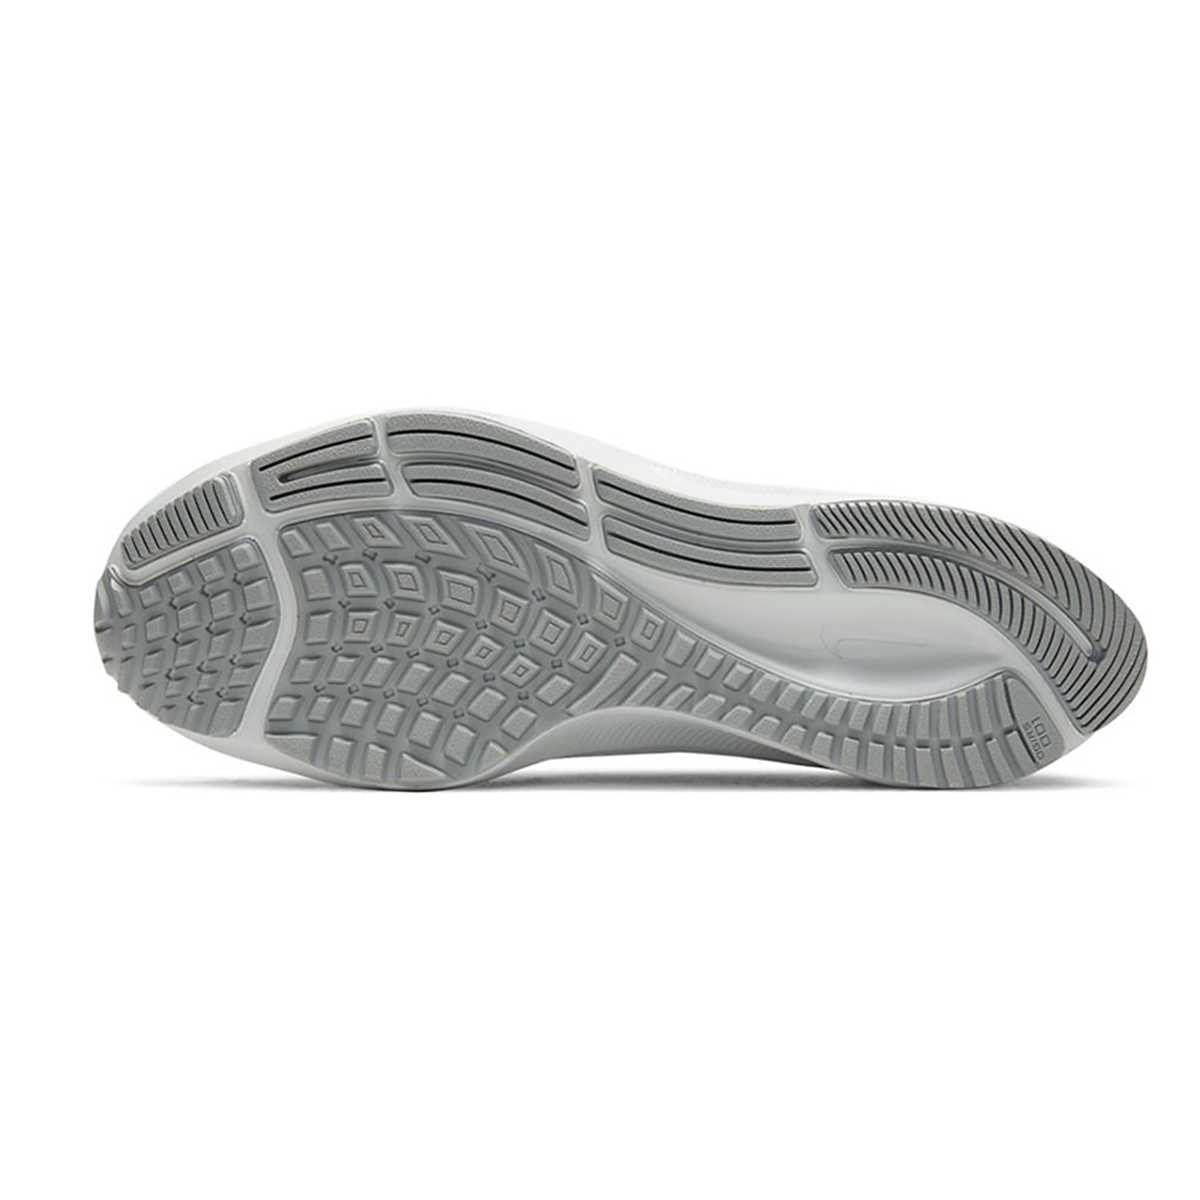 Women's Nike Air Zoom Pegasus 37 Running Shoe - Color: Pure Platinum/Silver/Wolf Grey - Size: 5 - Width: Regular, Pure Platinum/Silver/Wolf Grey, large, image 3